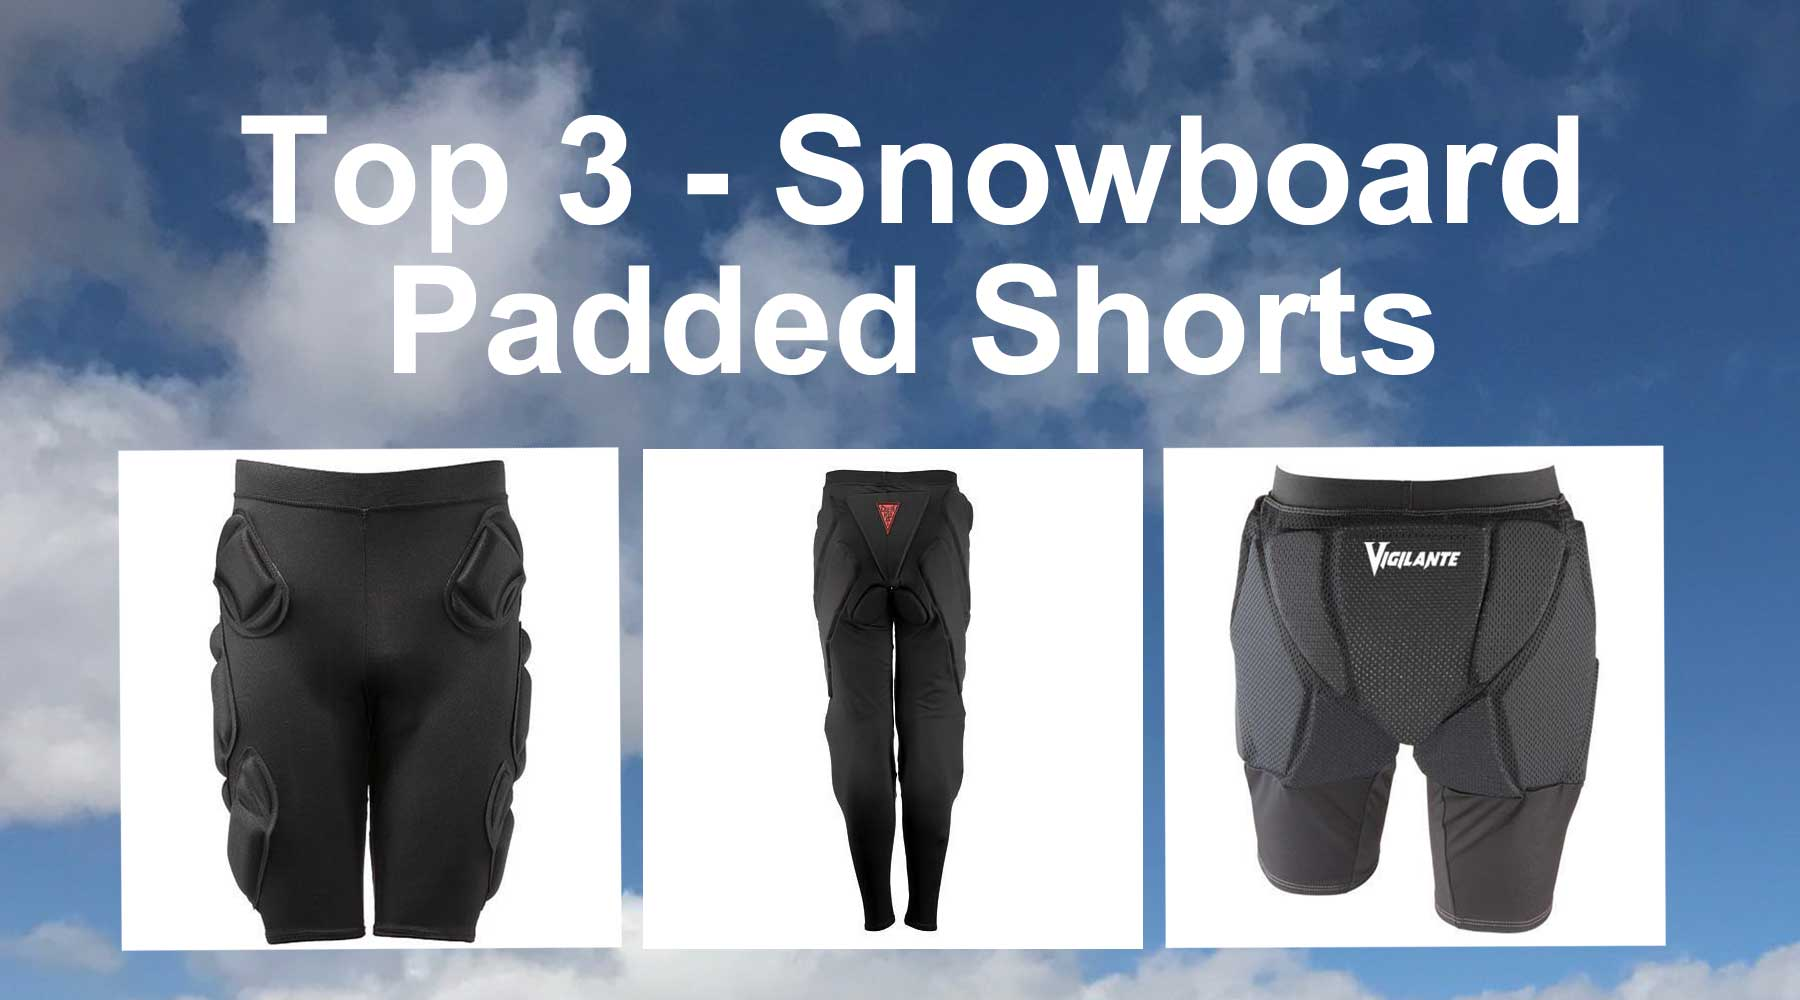 Best Snowboard Padded Shorts - Top 3